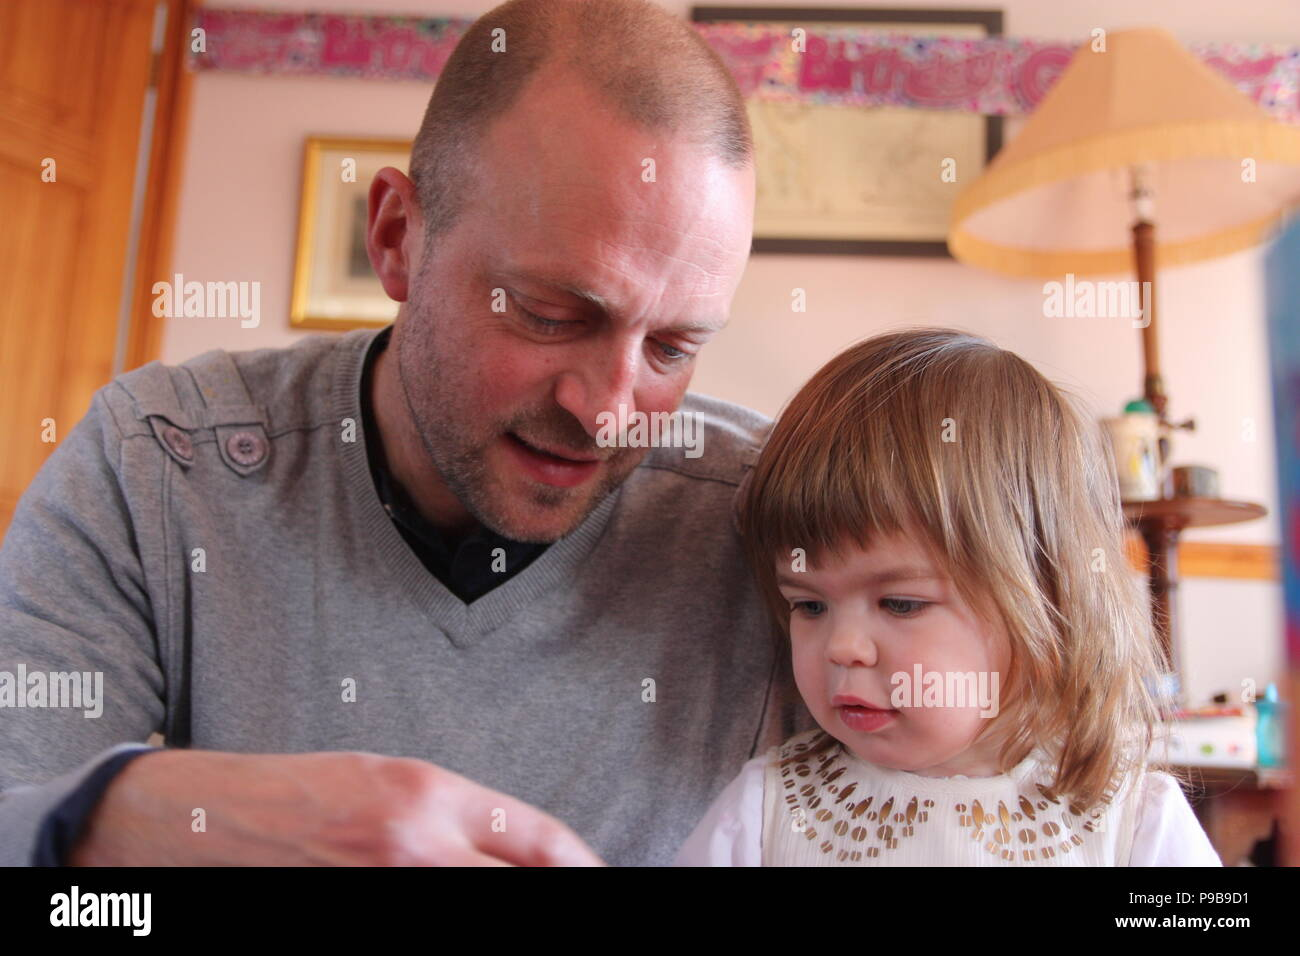 Man and young girl bonding in sweet picture in sitting room at home - Stock Image